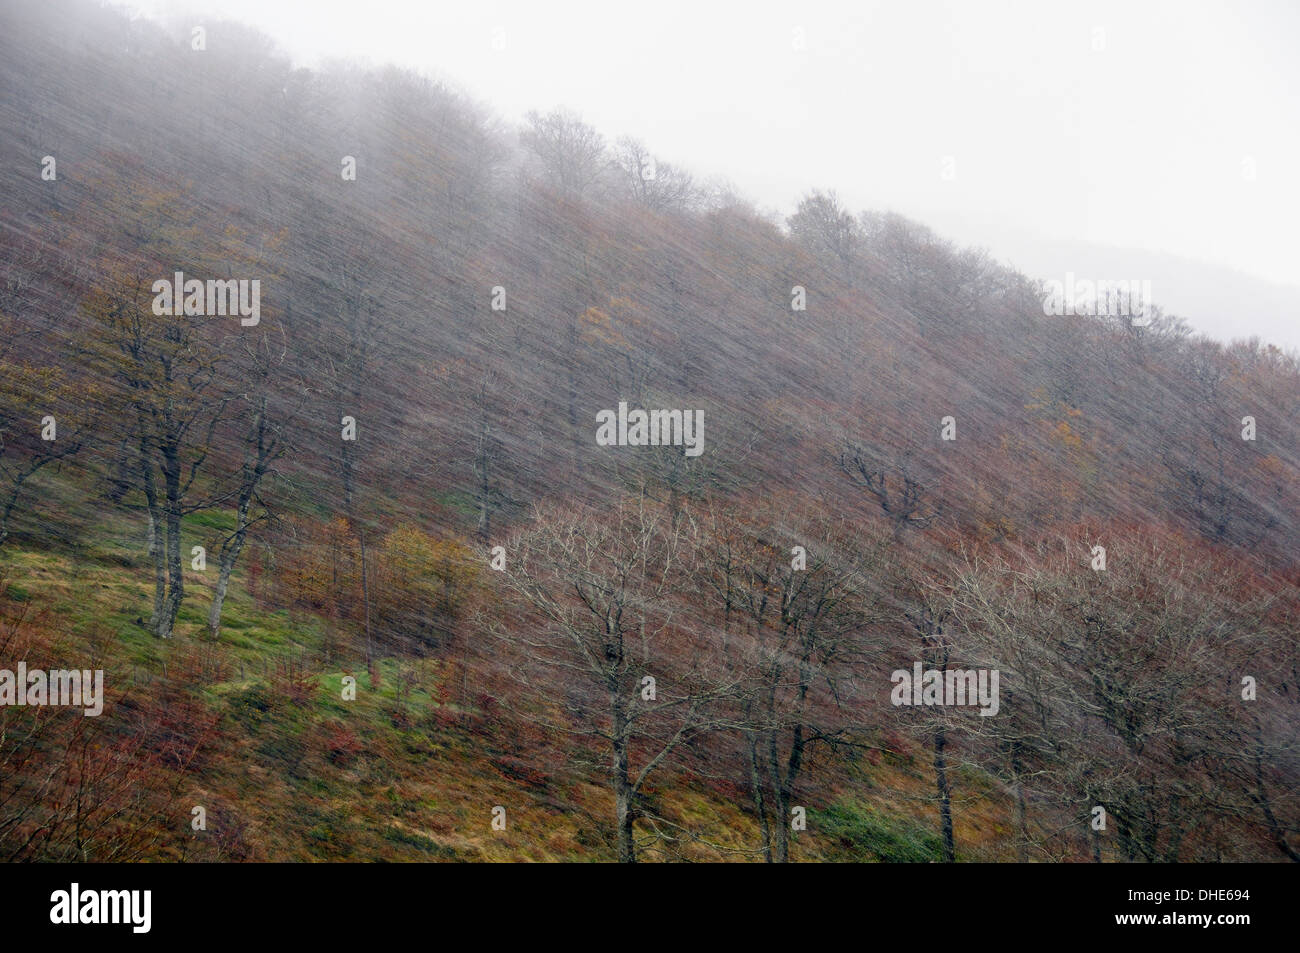 Snow blizzard sweeping wooded ridge in the Pyrenees mountains in late autumn, Roncesvalles, Navarre, Spain, November. Stock Photo